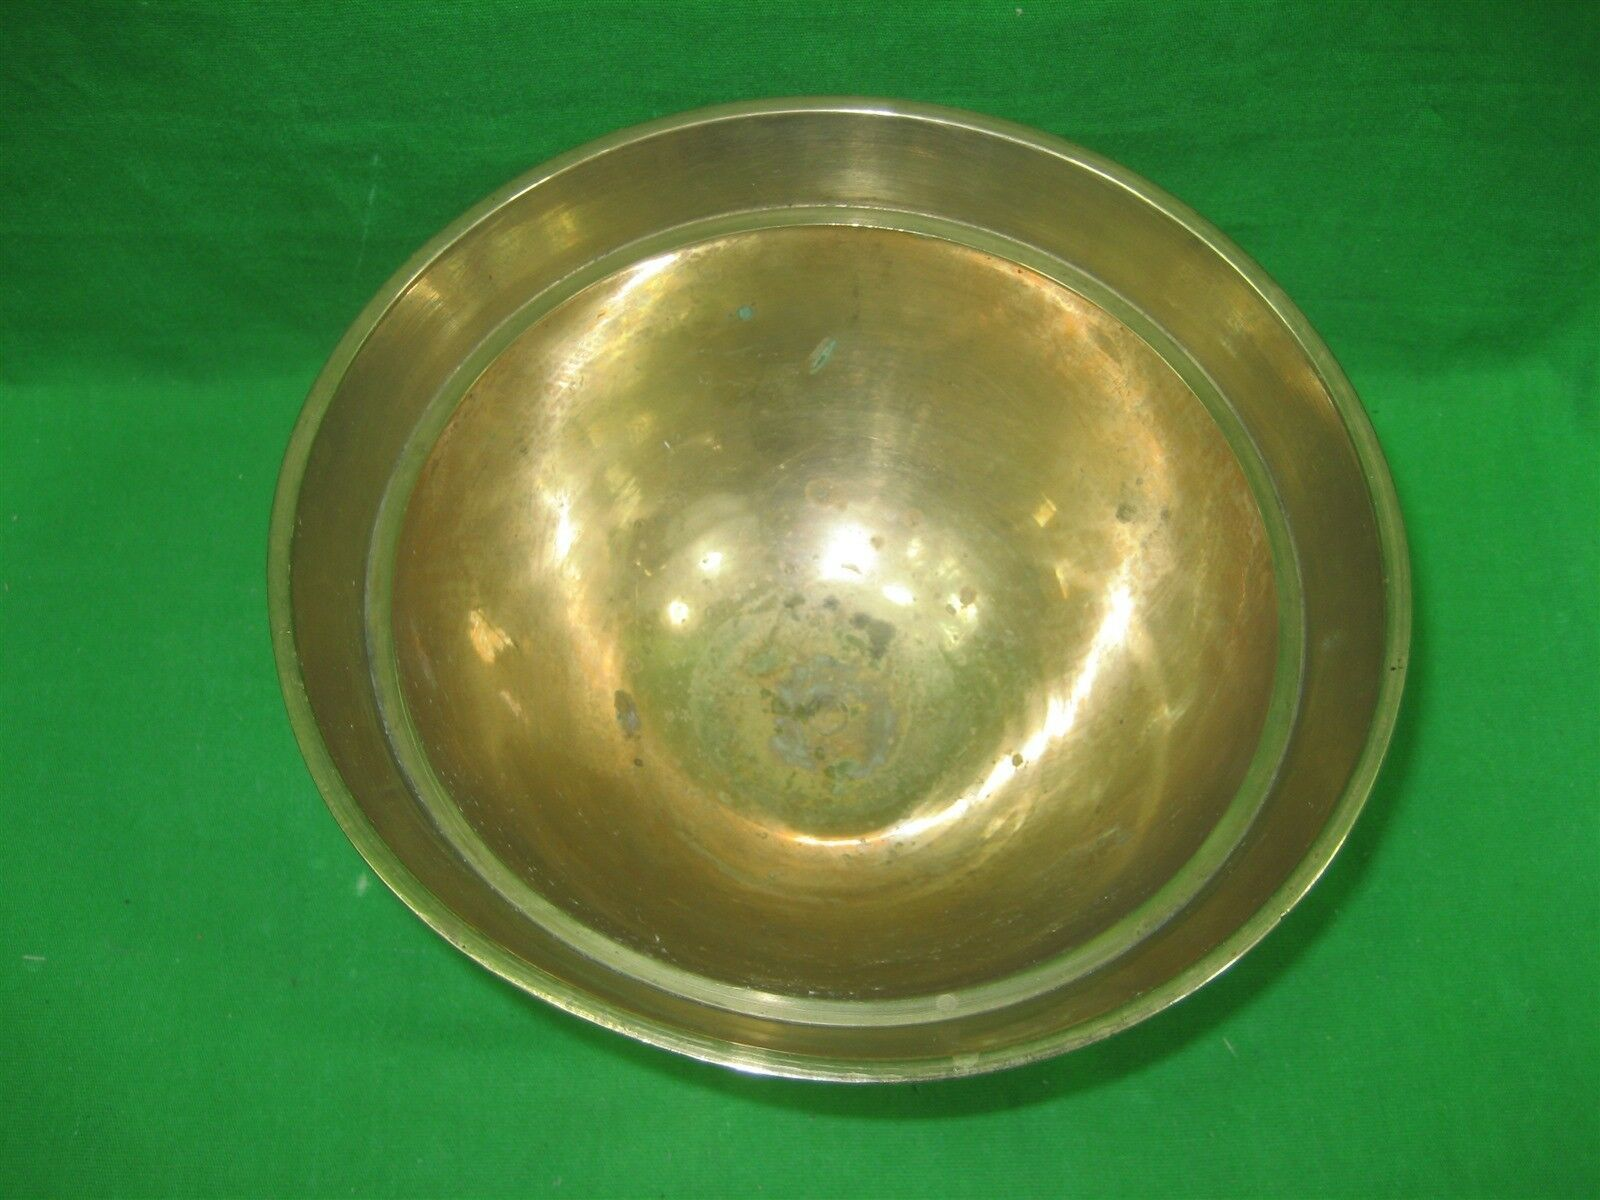 """Vintage Brass Etched Bowl Centerpiece on Pedestal Made In India Ornate 5"""" Tall image 3"""